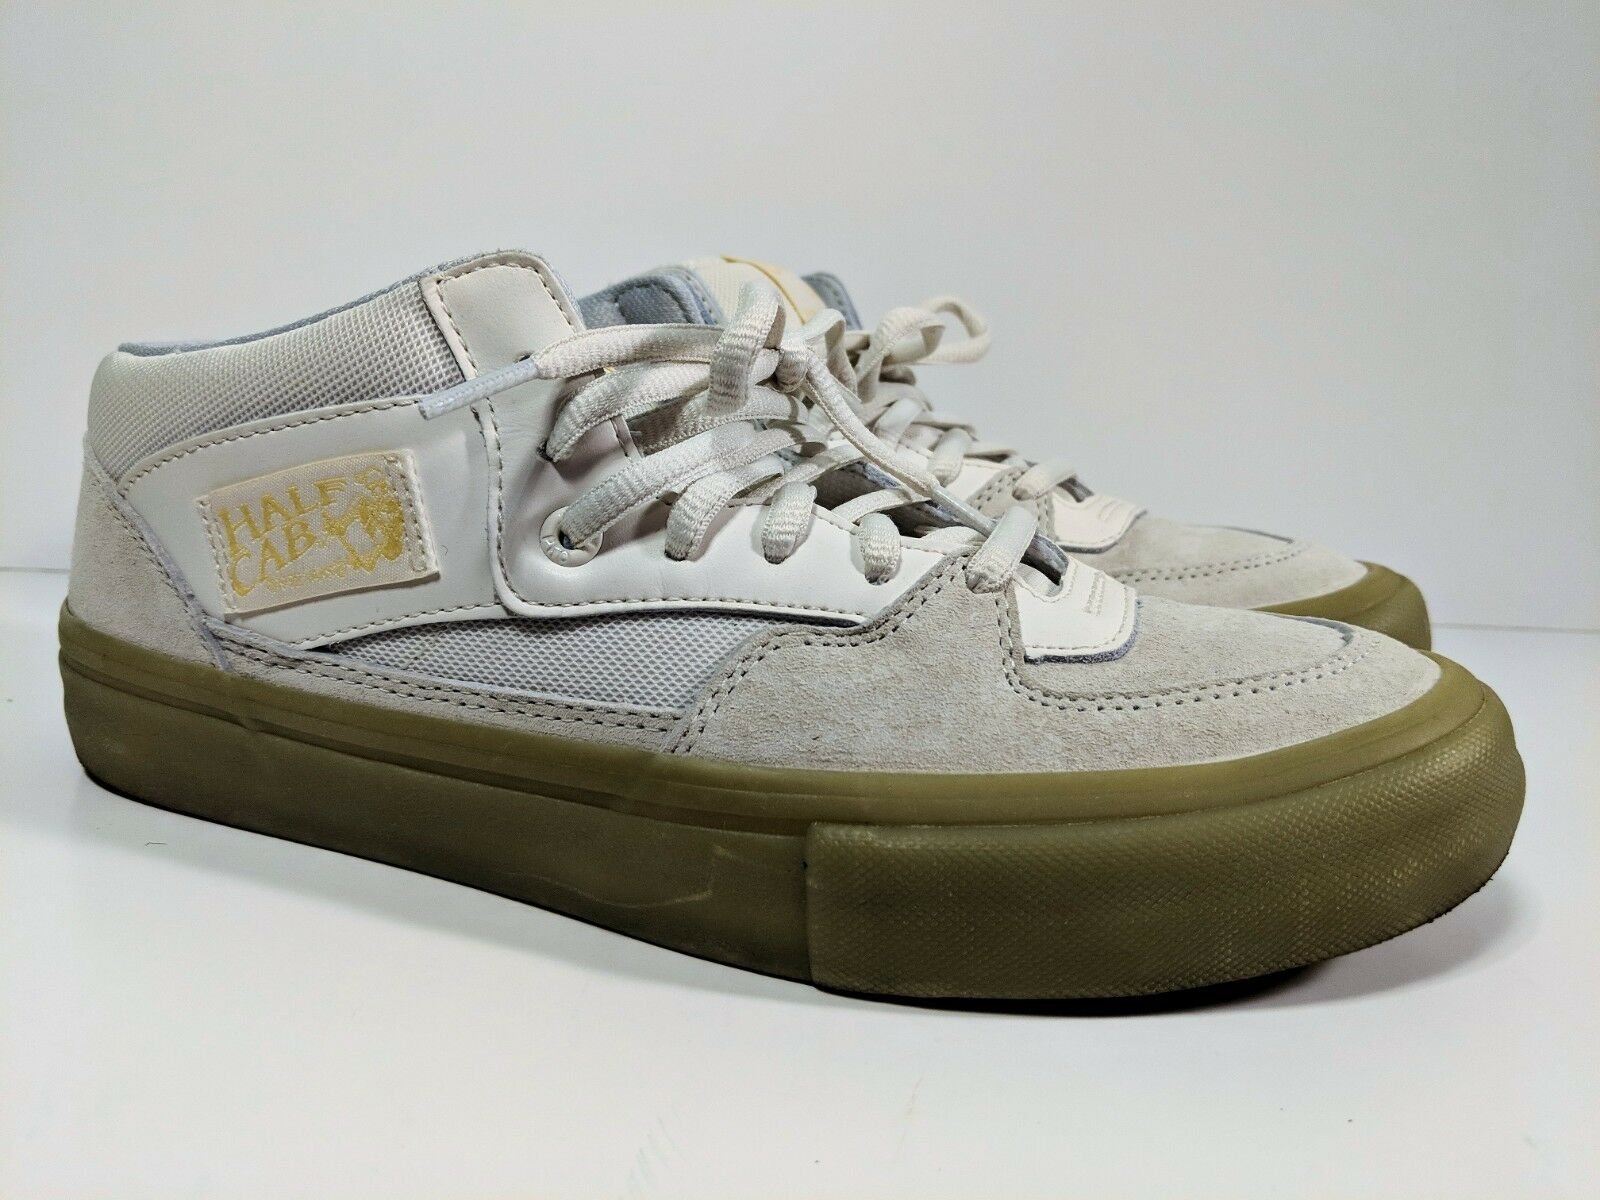 Vans Half Cab Pro Pyramid Country Taglia 8.5 White Glow In The Dark VN0A38CPP9Q White 8.5 4b4fe9